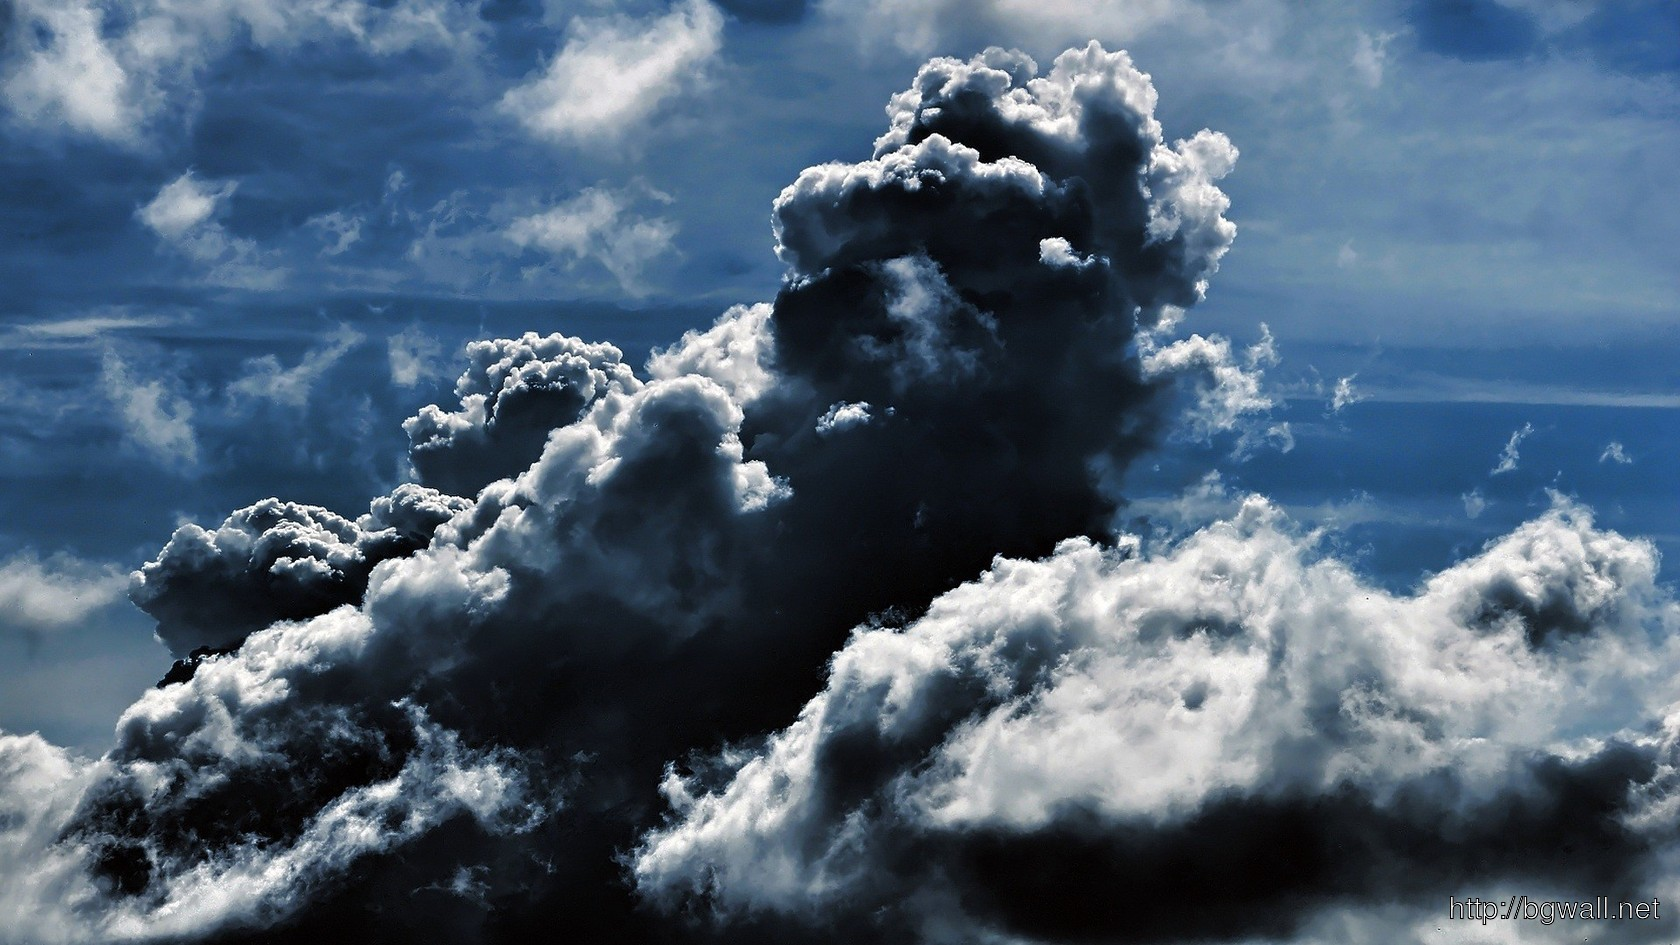 Storm Clouds Wallpaper 6027 Full Size